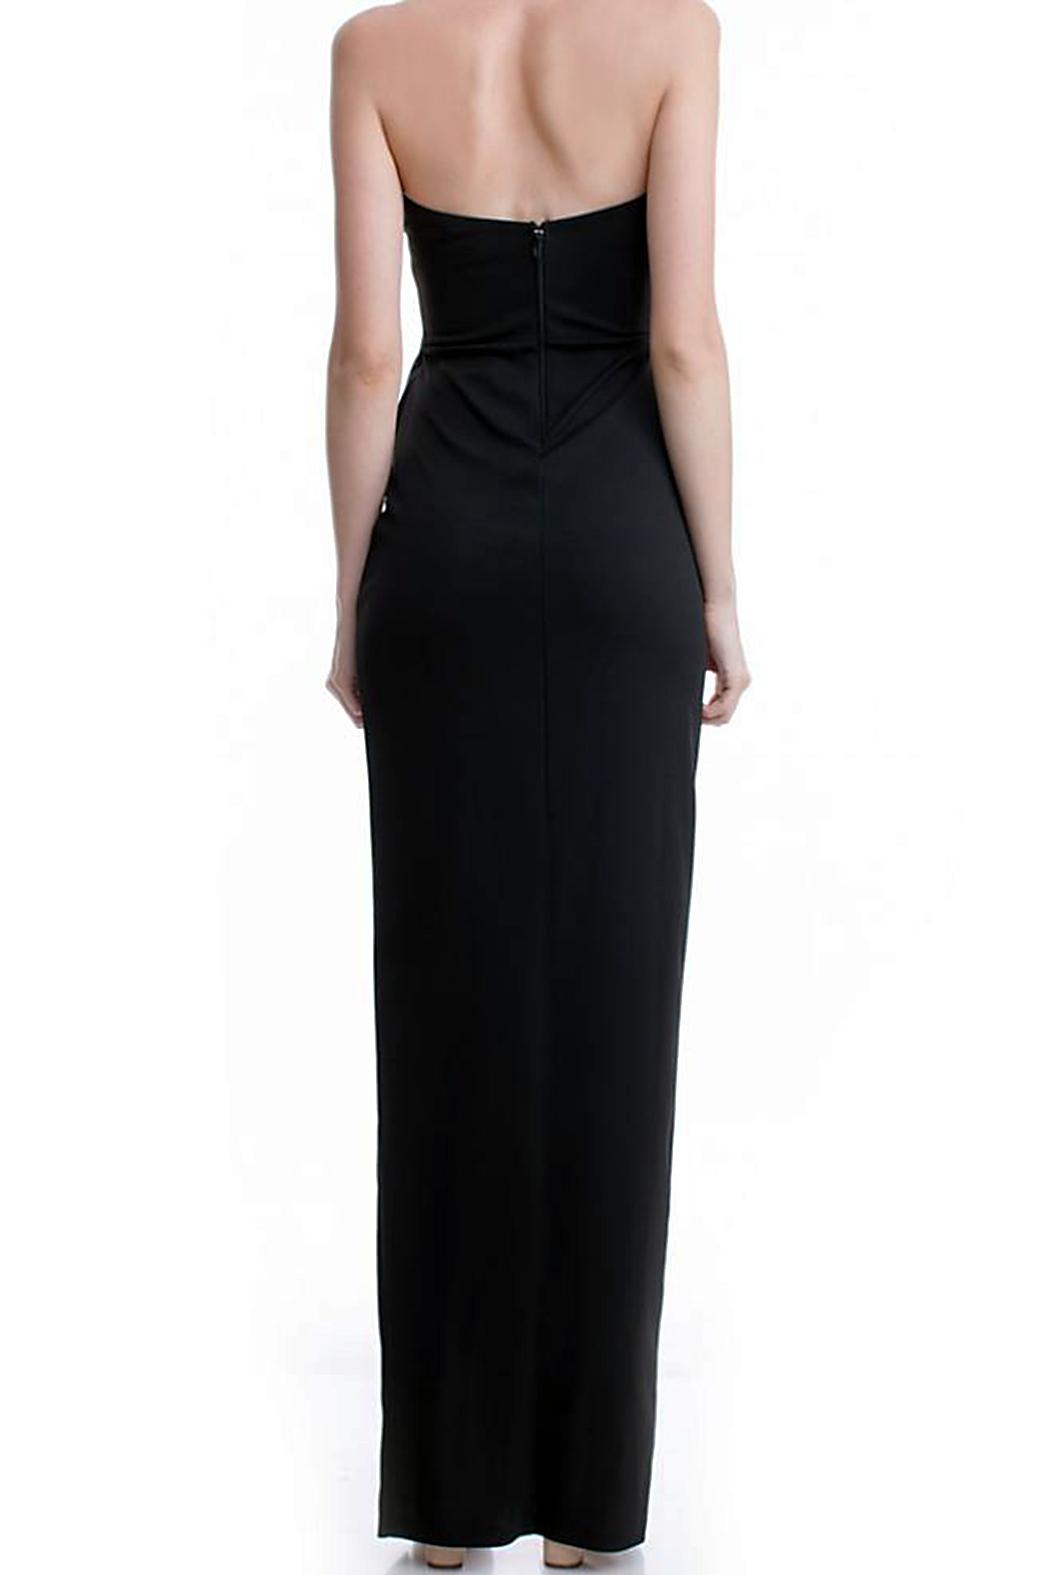 Bee Daring Couture Bustier Maxi Dress - Front Full Image